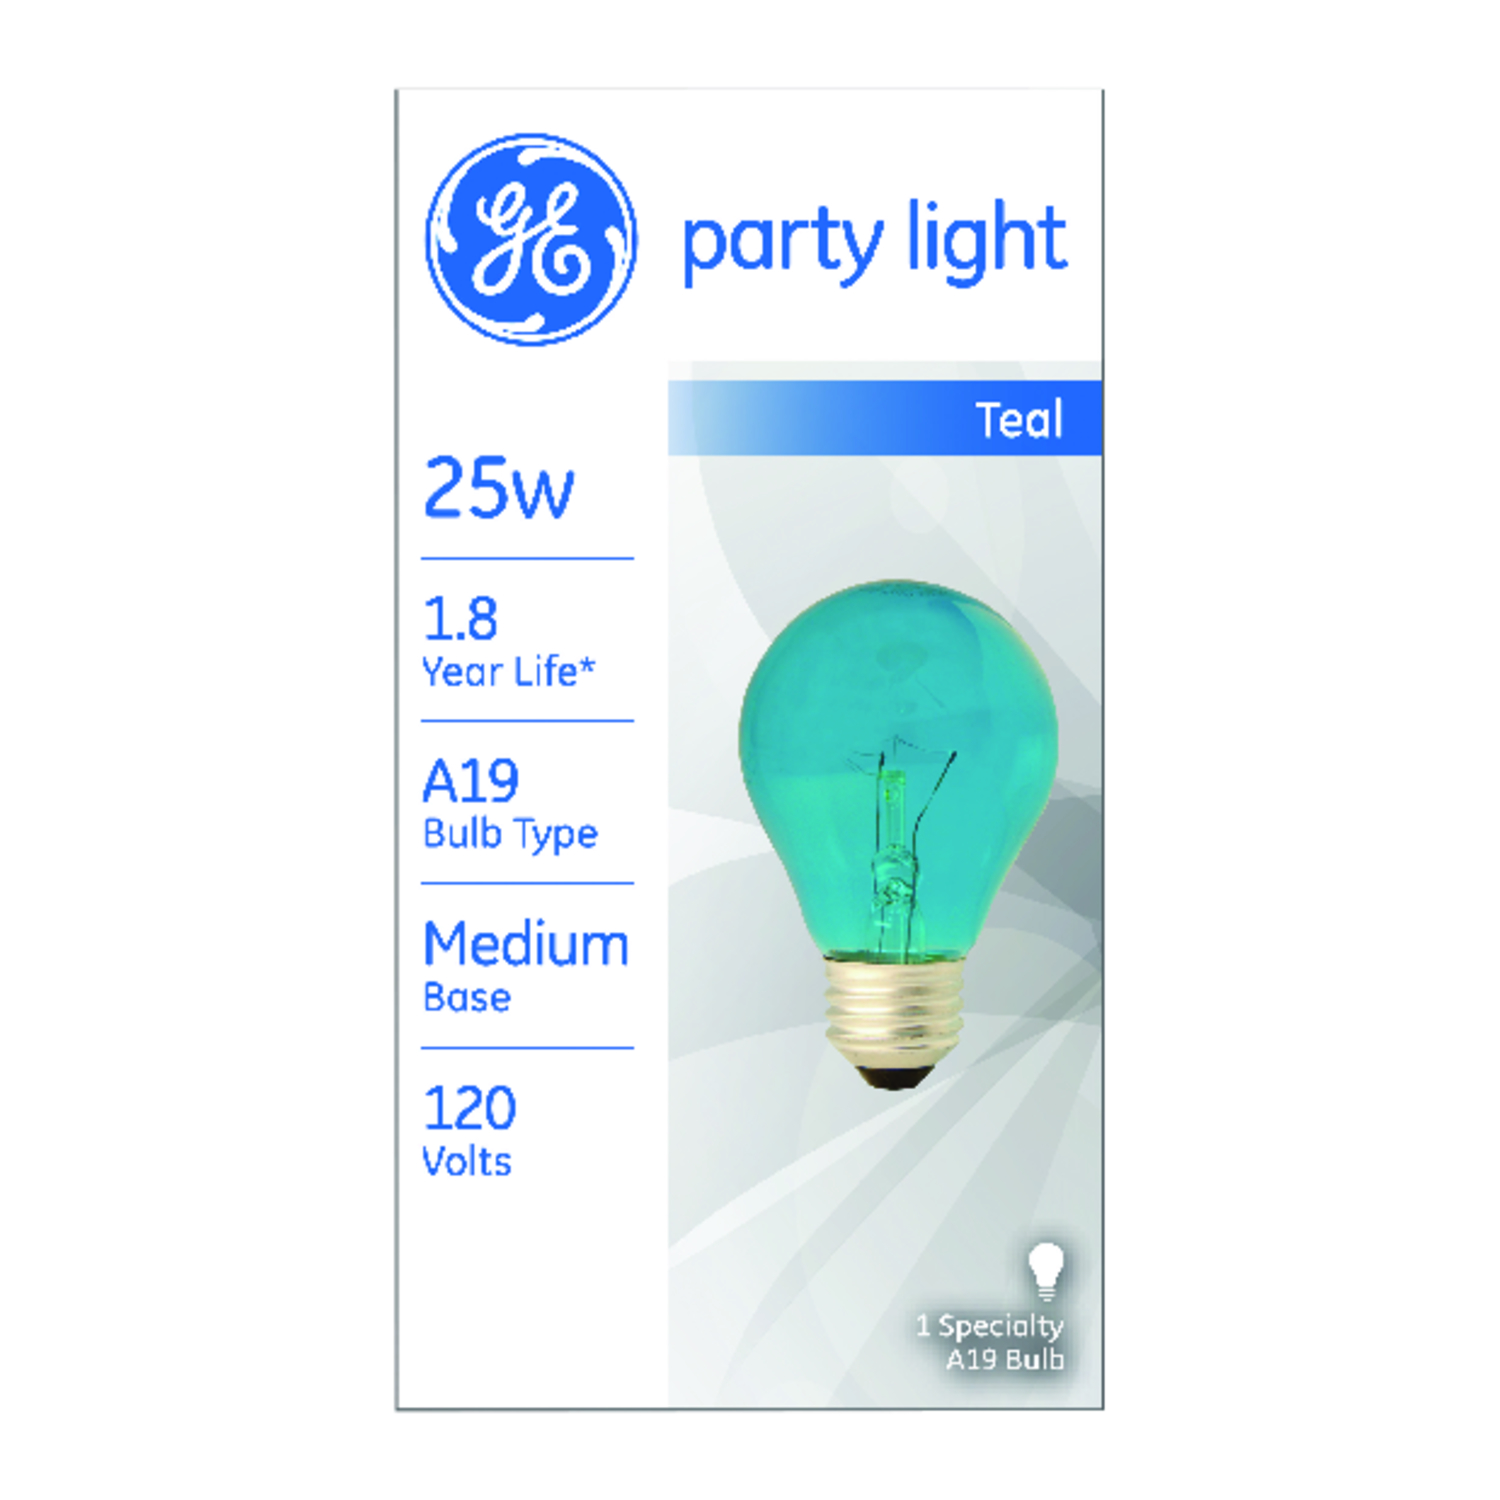 GE Lighting  party light  25 watts A19  Incandescent Bulb  White  A-Line  1 pk